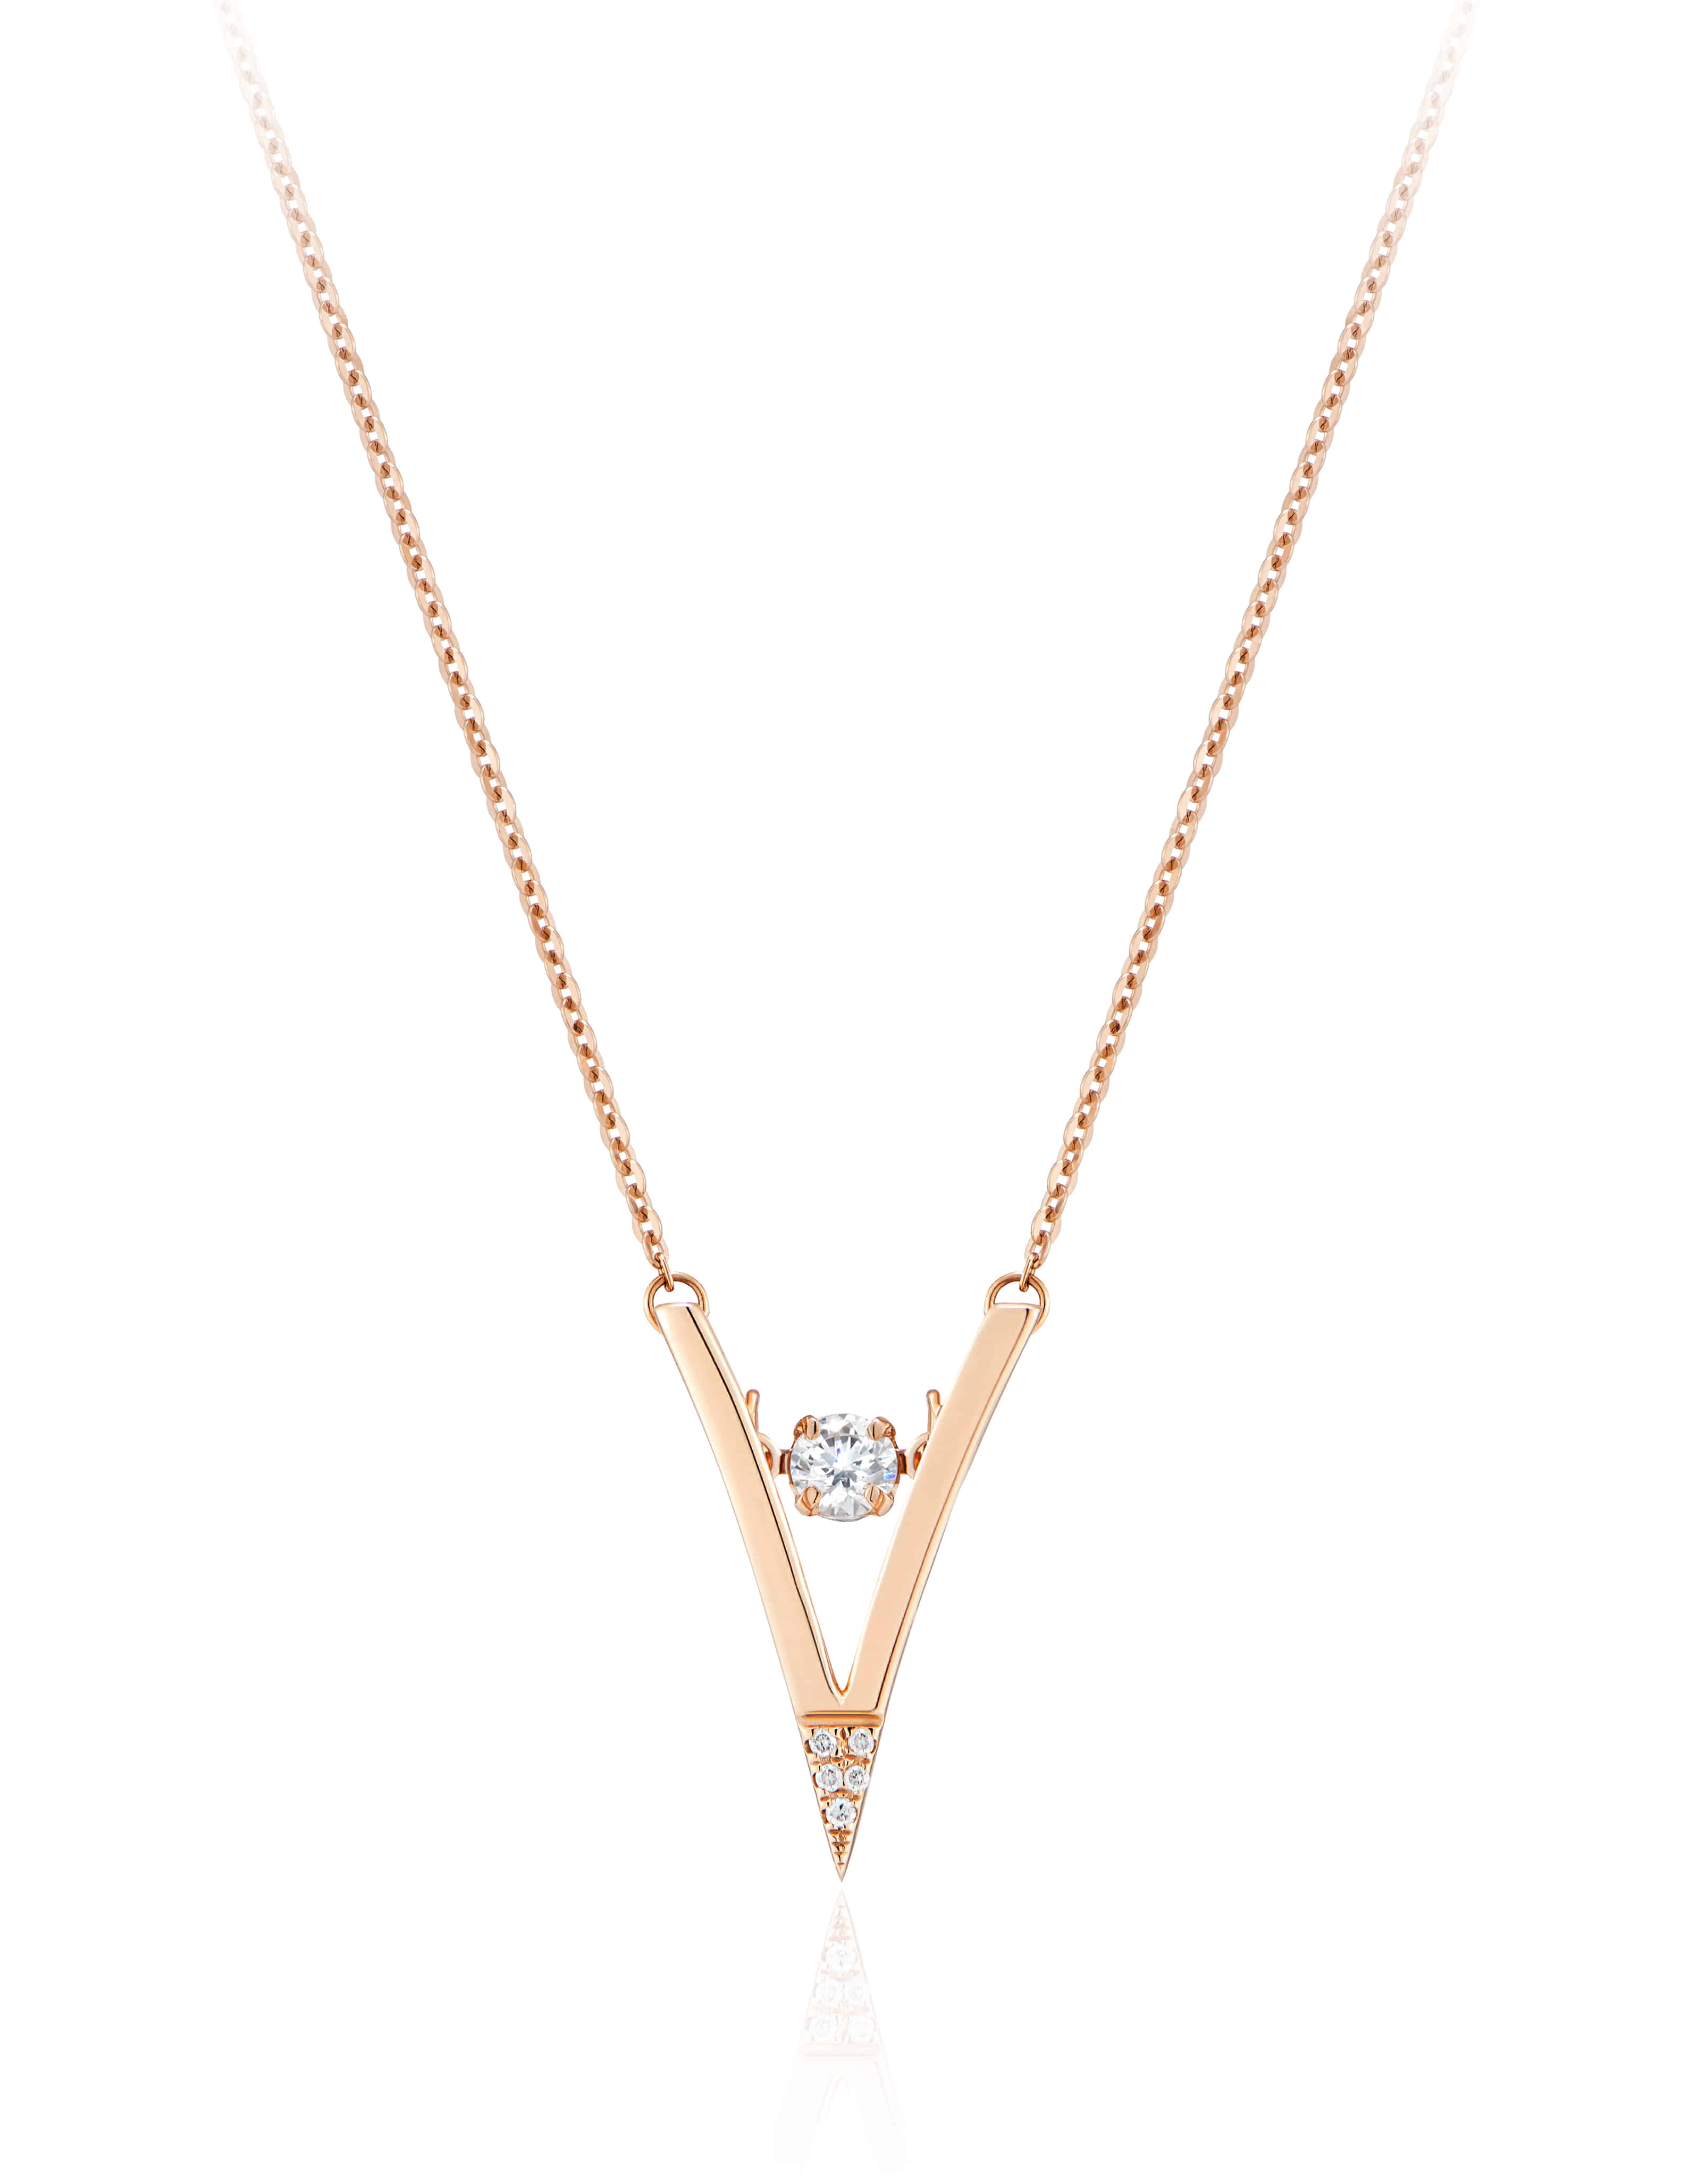 LIGNE collection_ BASE necklace